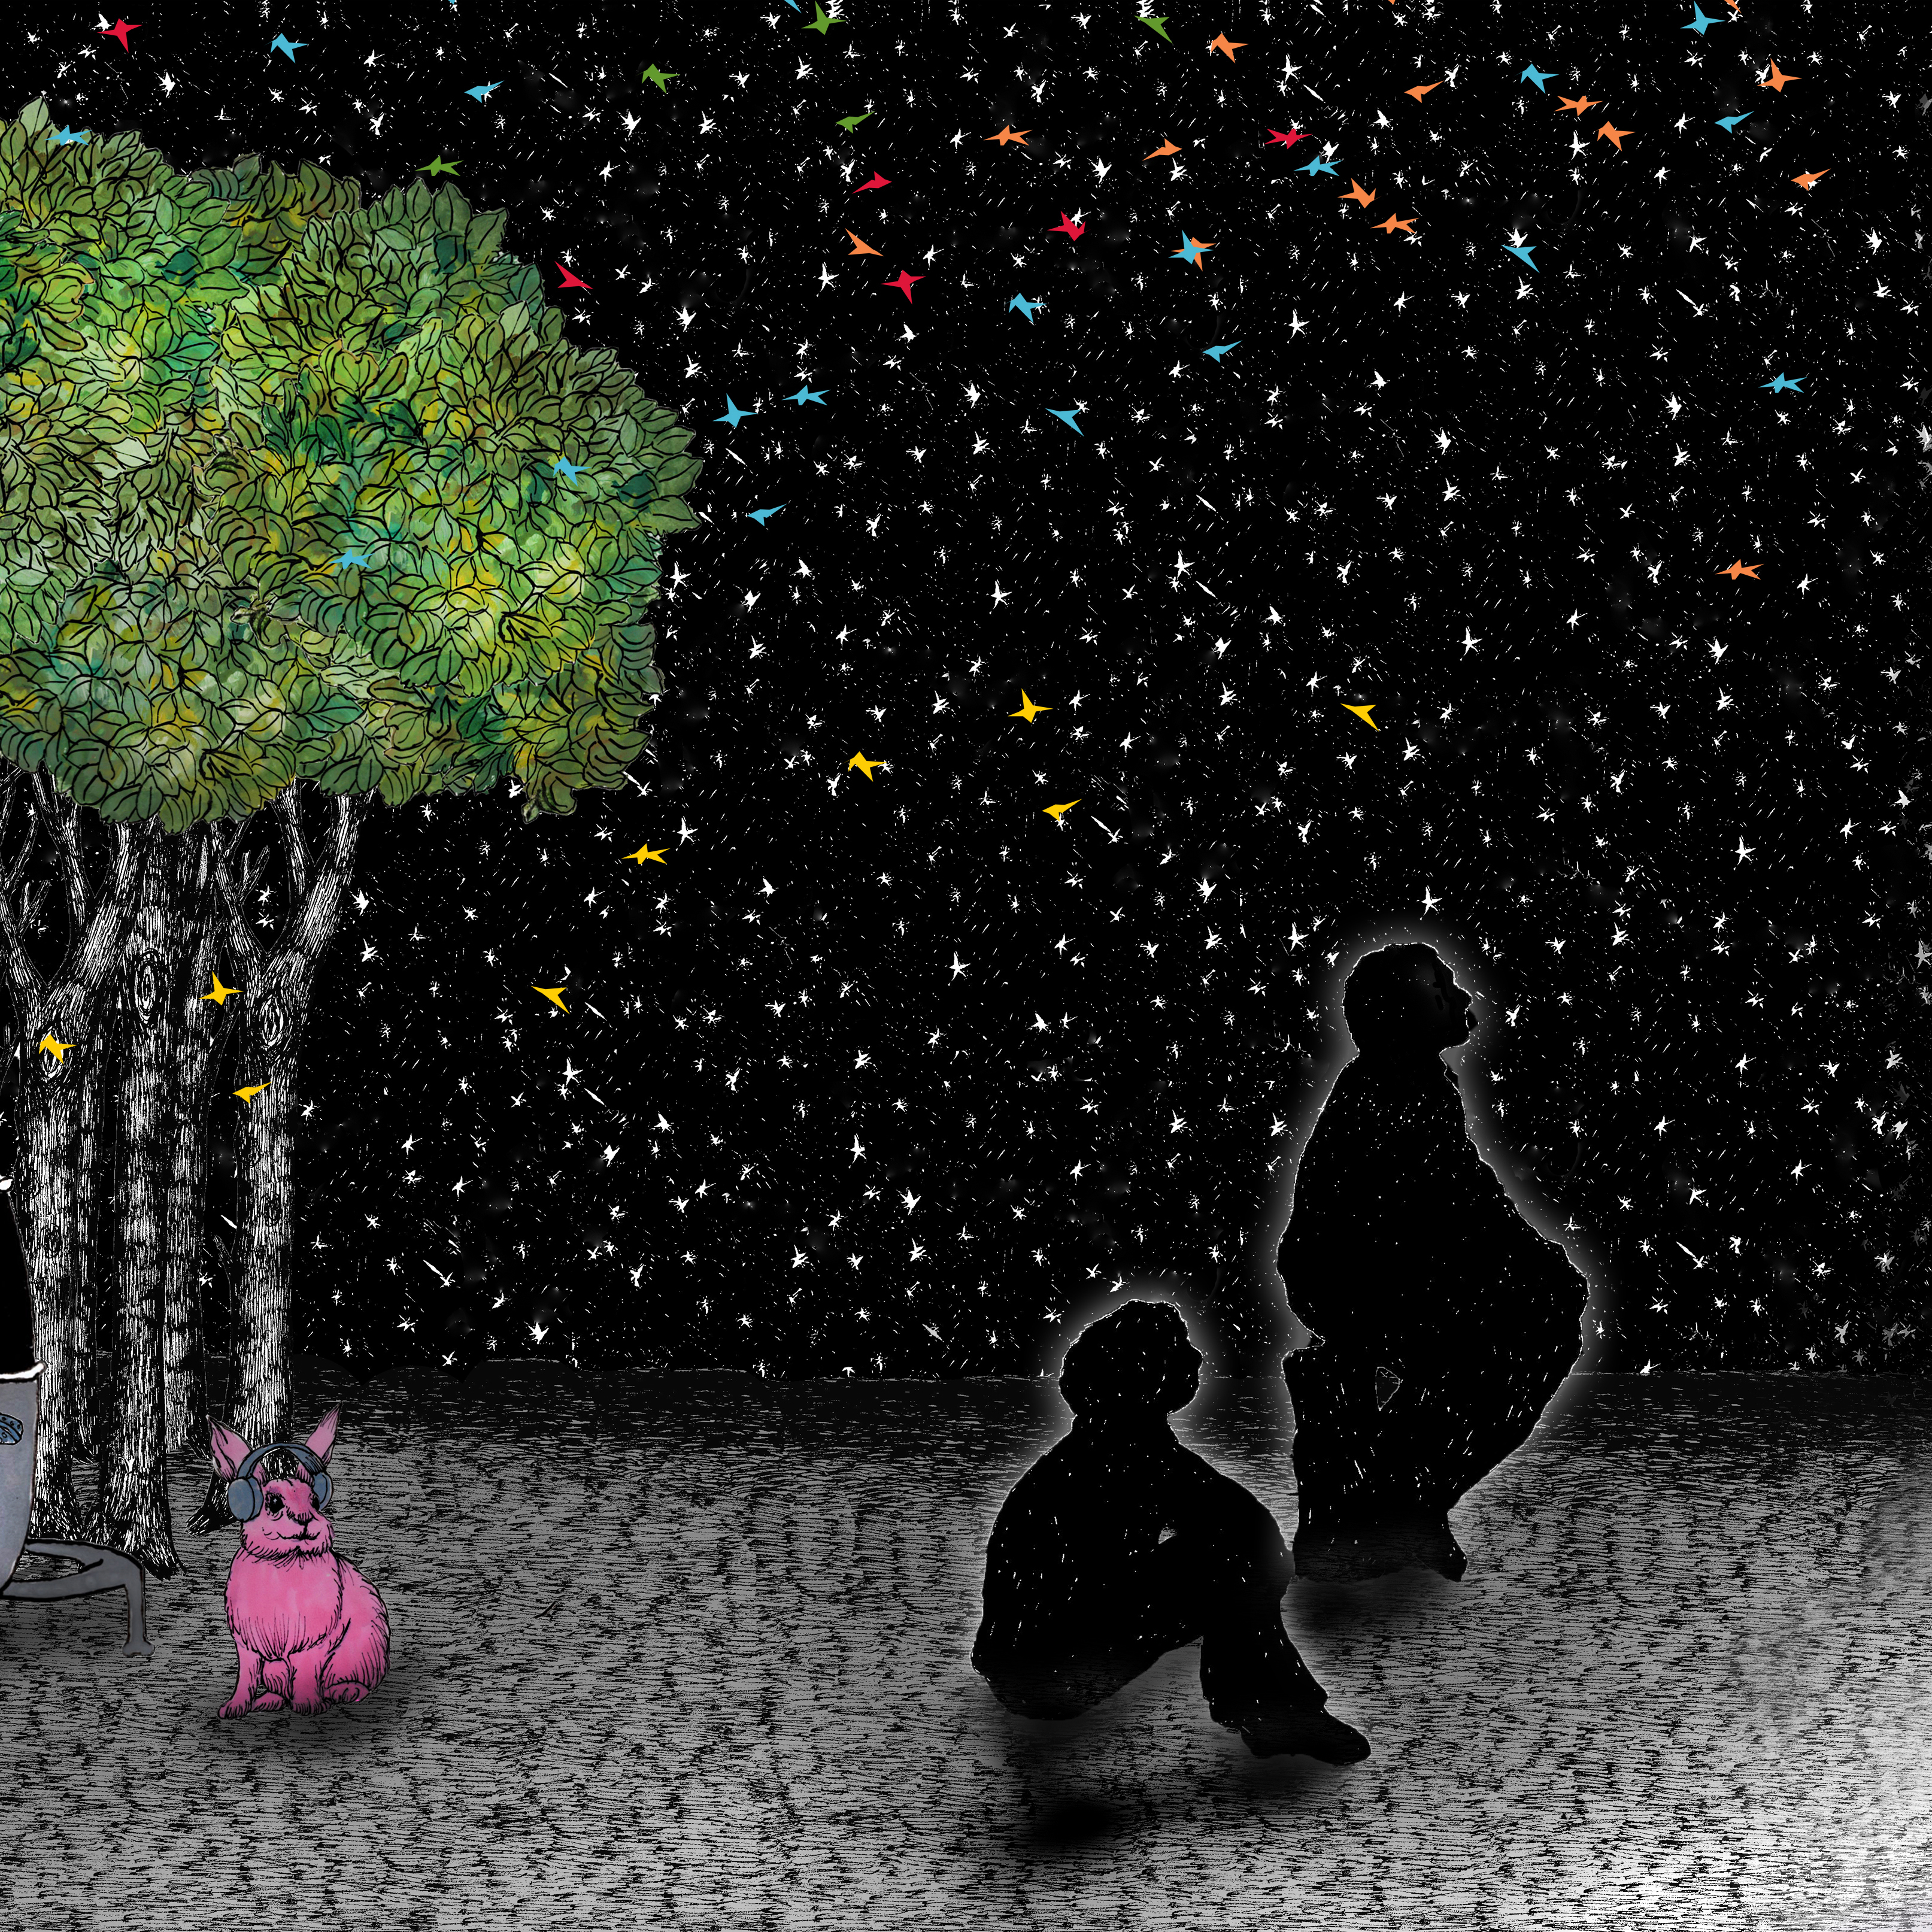 Drawing of two people in silhouette in front of a forest, looking out at the stars. Behind them in the forest is a pink bunny wearing headphones.